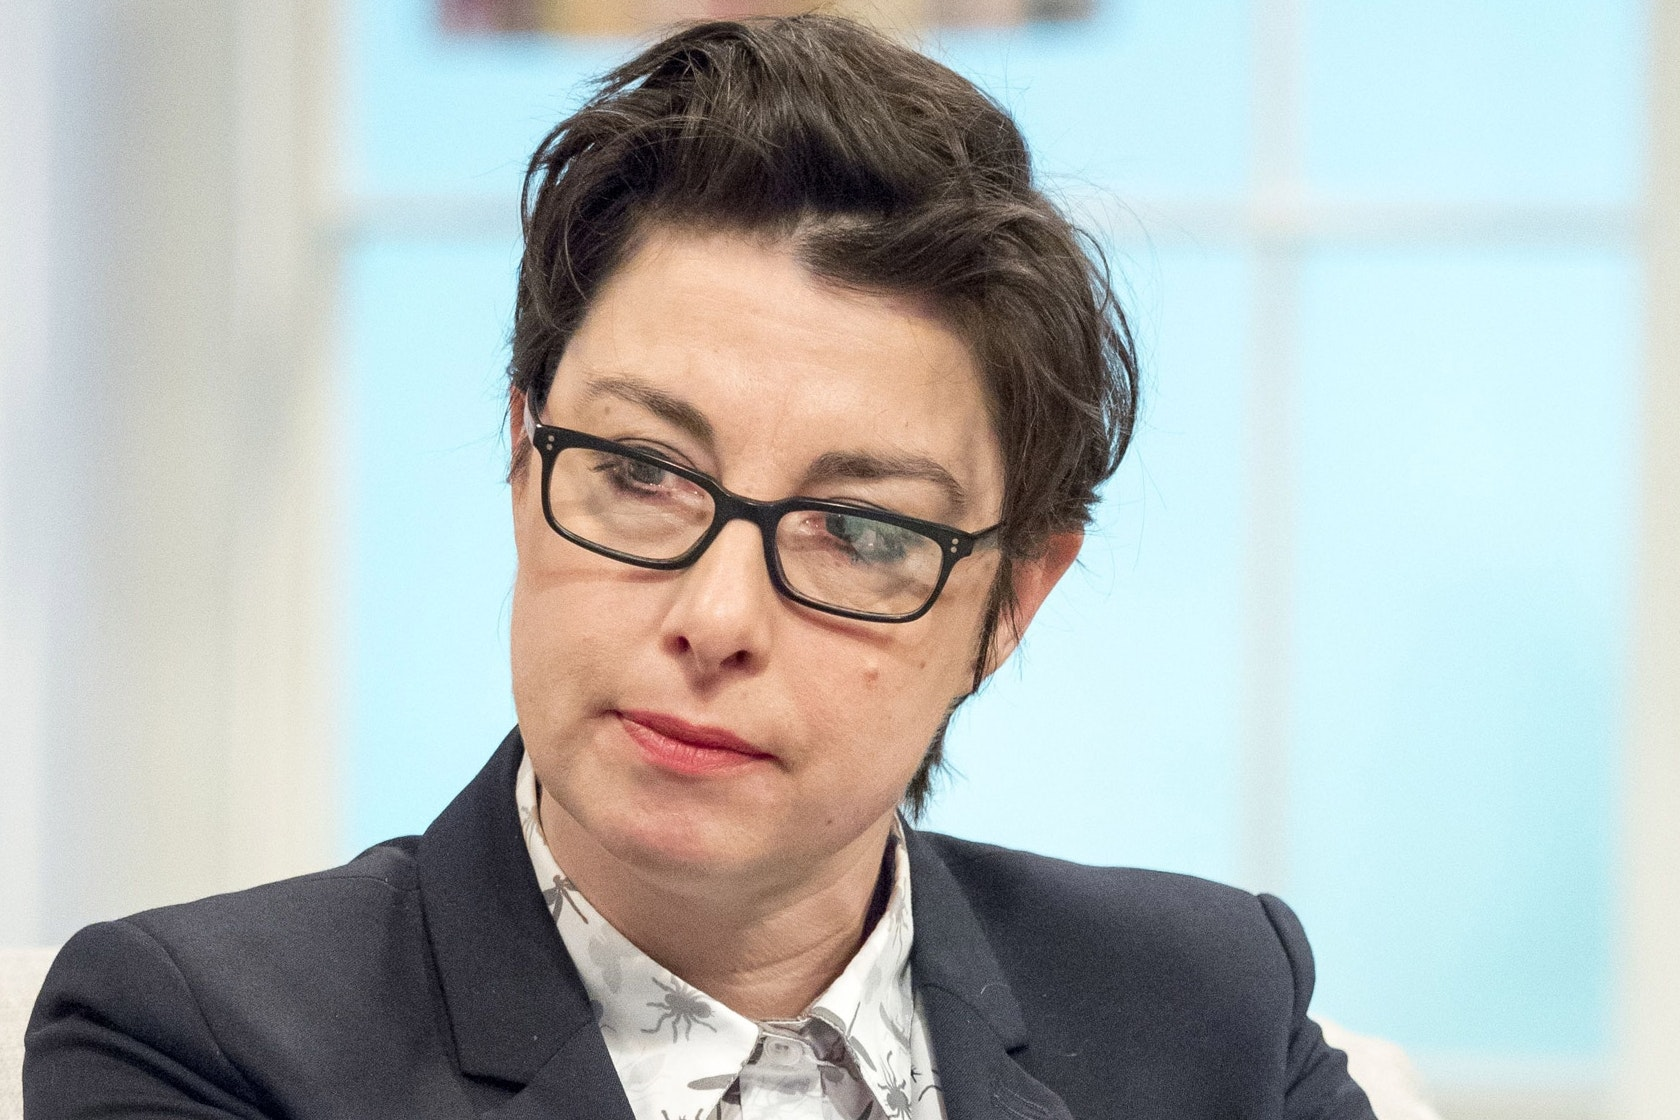 Selfie Sue Perkins nudes (71 photos), Ass, Cleavage, Twitter, swimsuit 2015